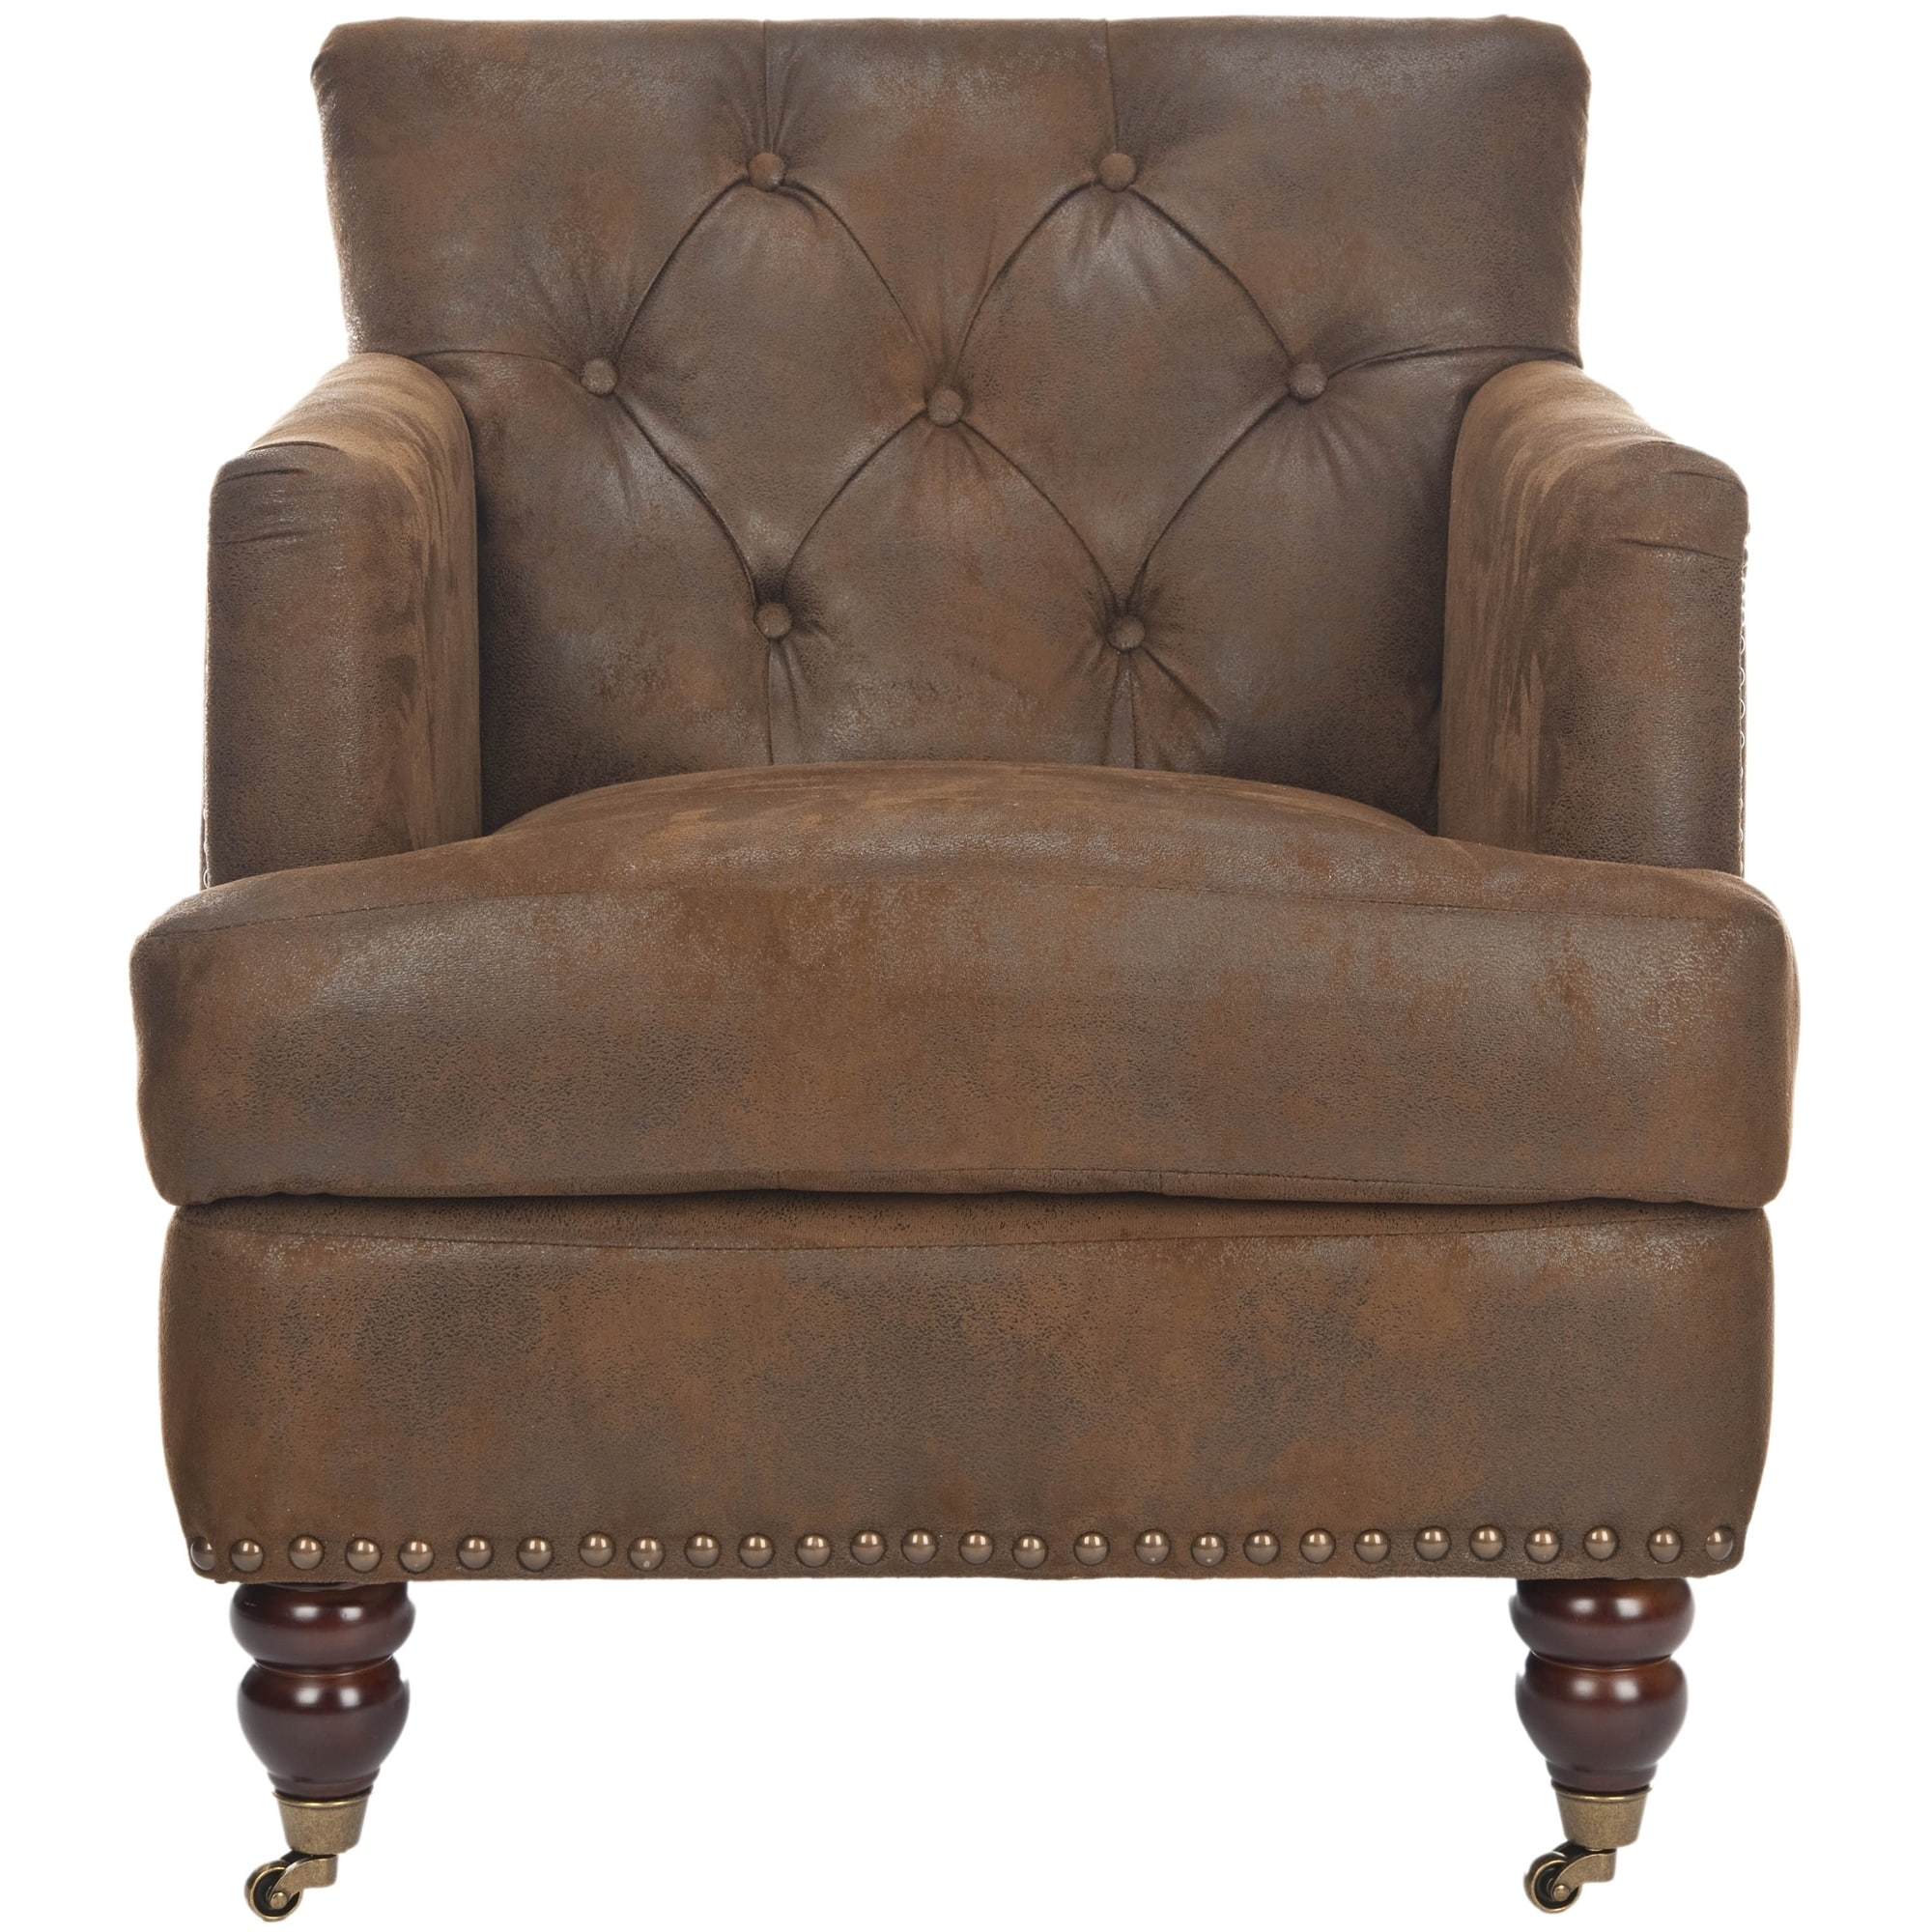 tufted living room chair living room chairs for less overstock 13677